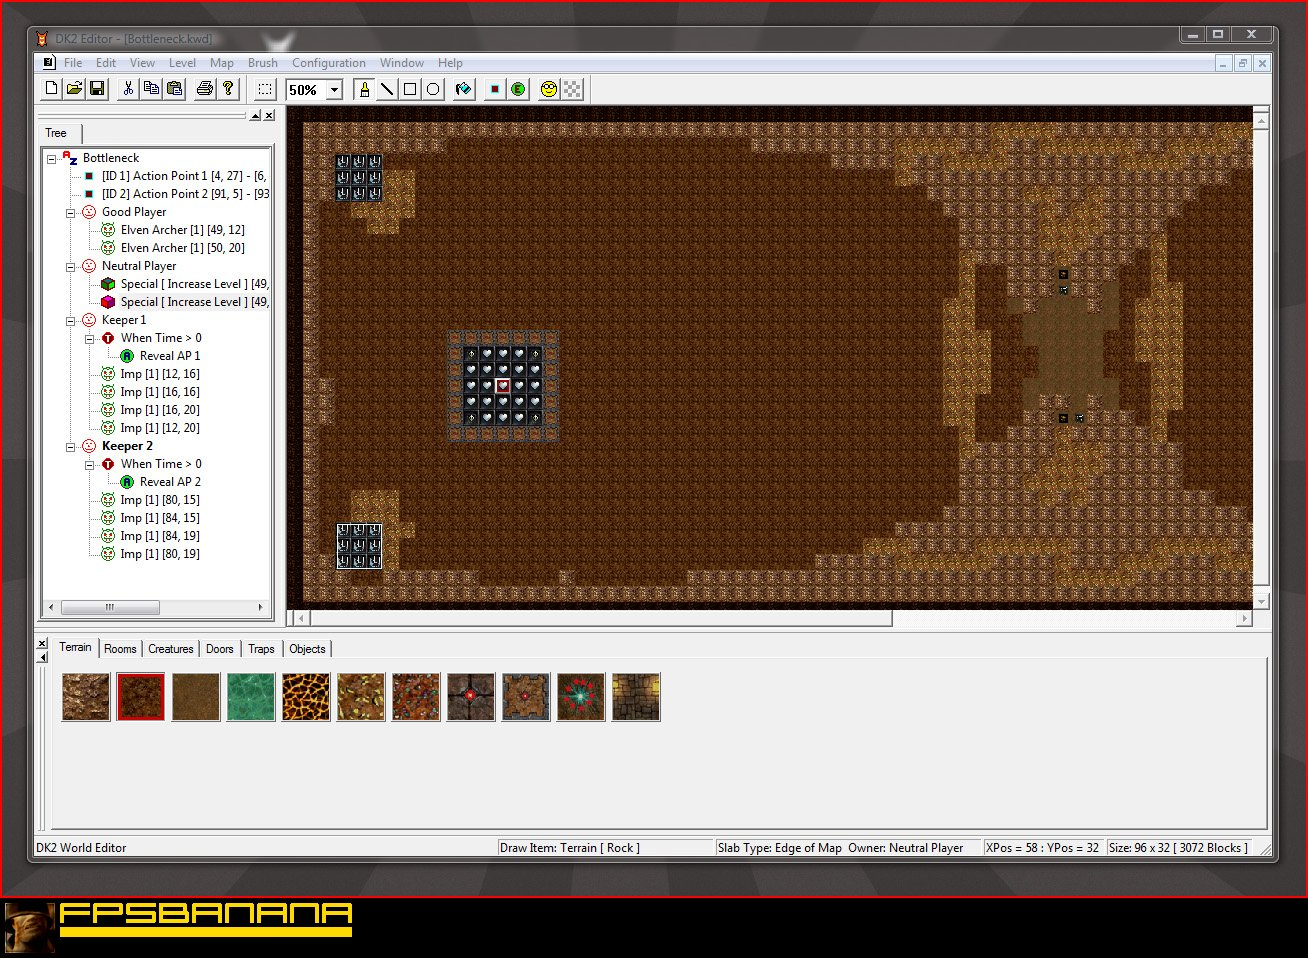 Dungeon keeper 2 map editor dungeon keeper 2 modding tools dungeon keeper 2 map editor gumiabroncs Image collections